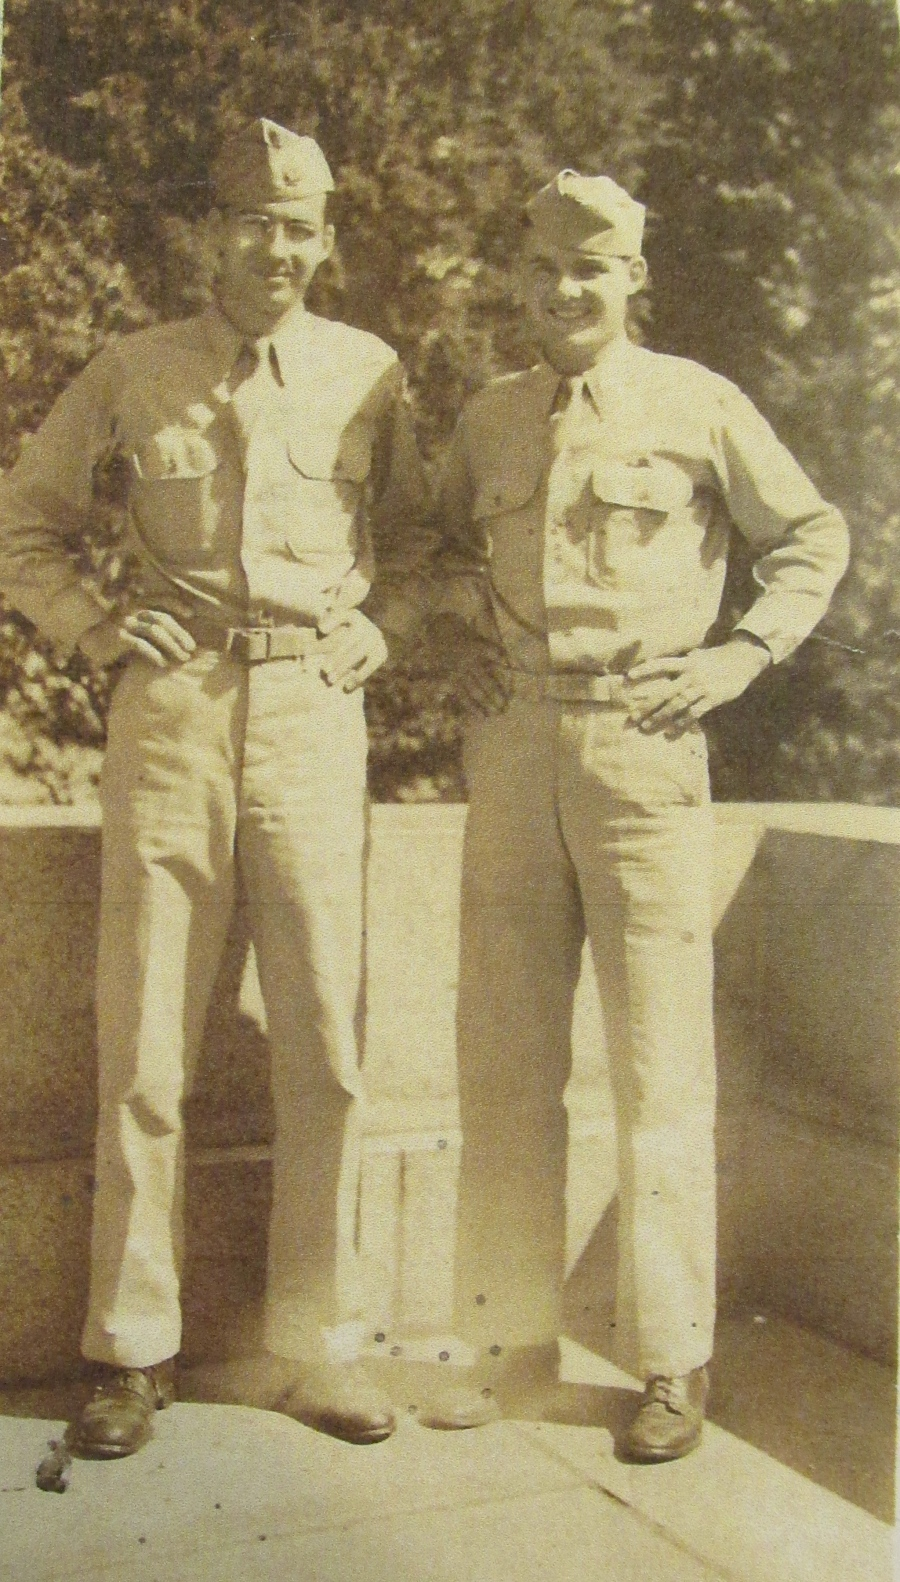 Cliff (right) and his older brother, Weston, in their Army uniforms during the war. Photo provided